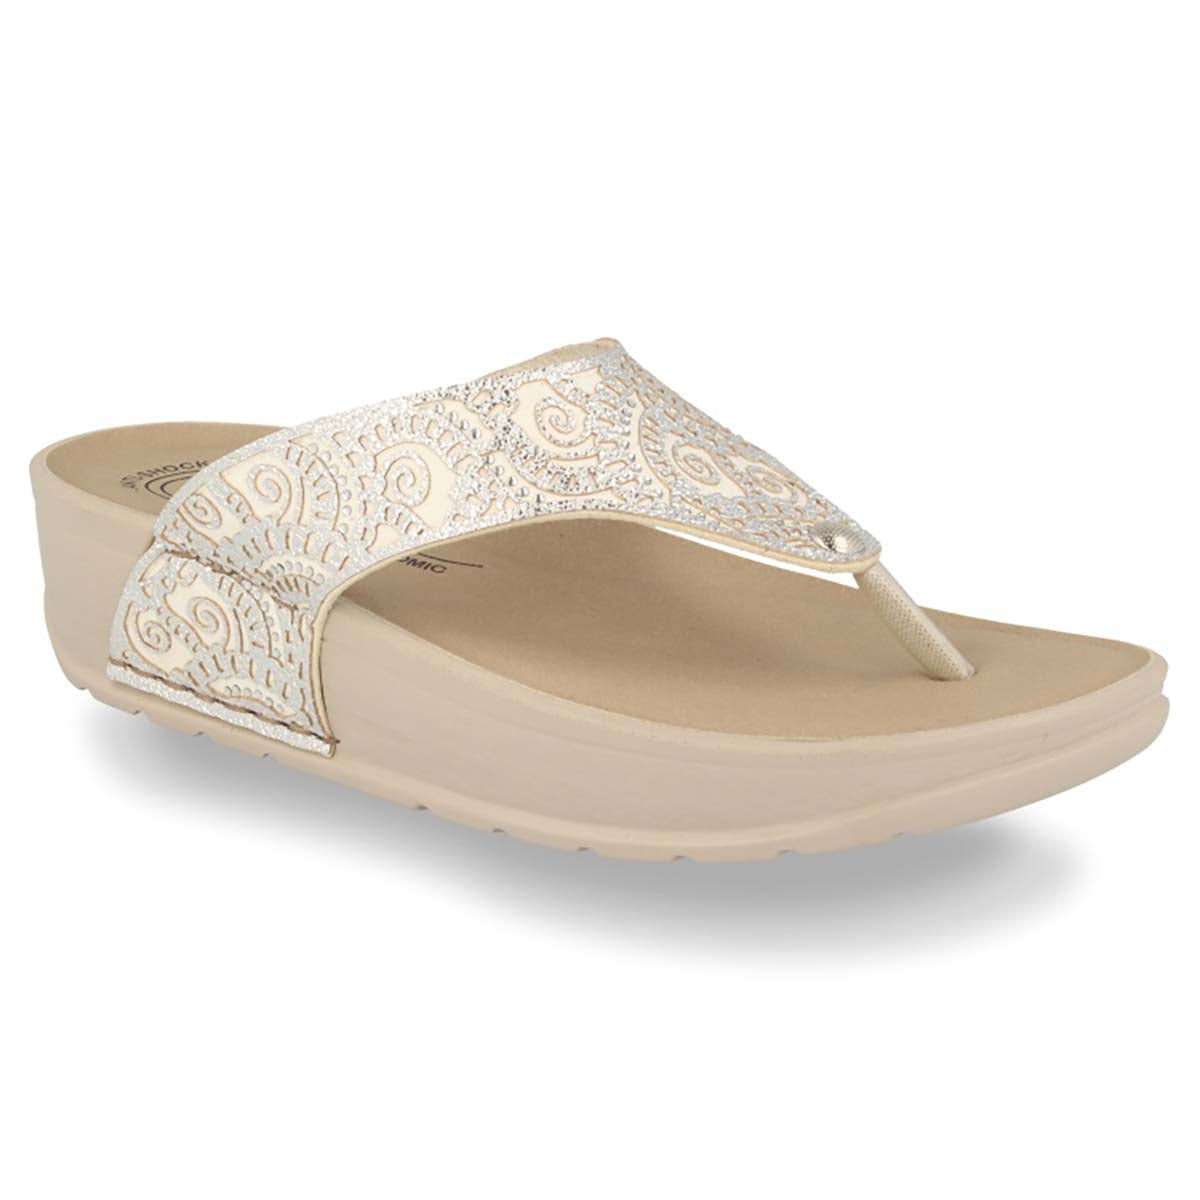 See photos Synthetic Woman Slipper White (38C45A2)